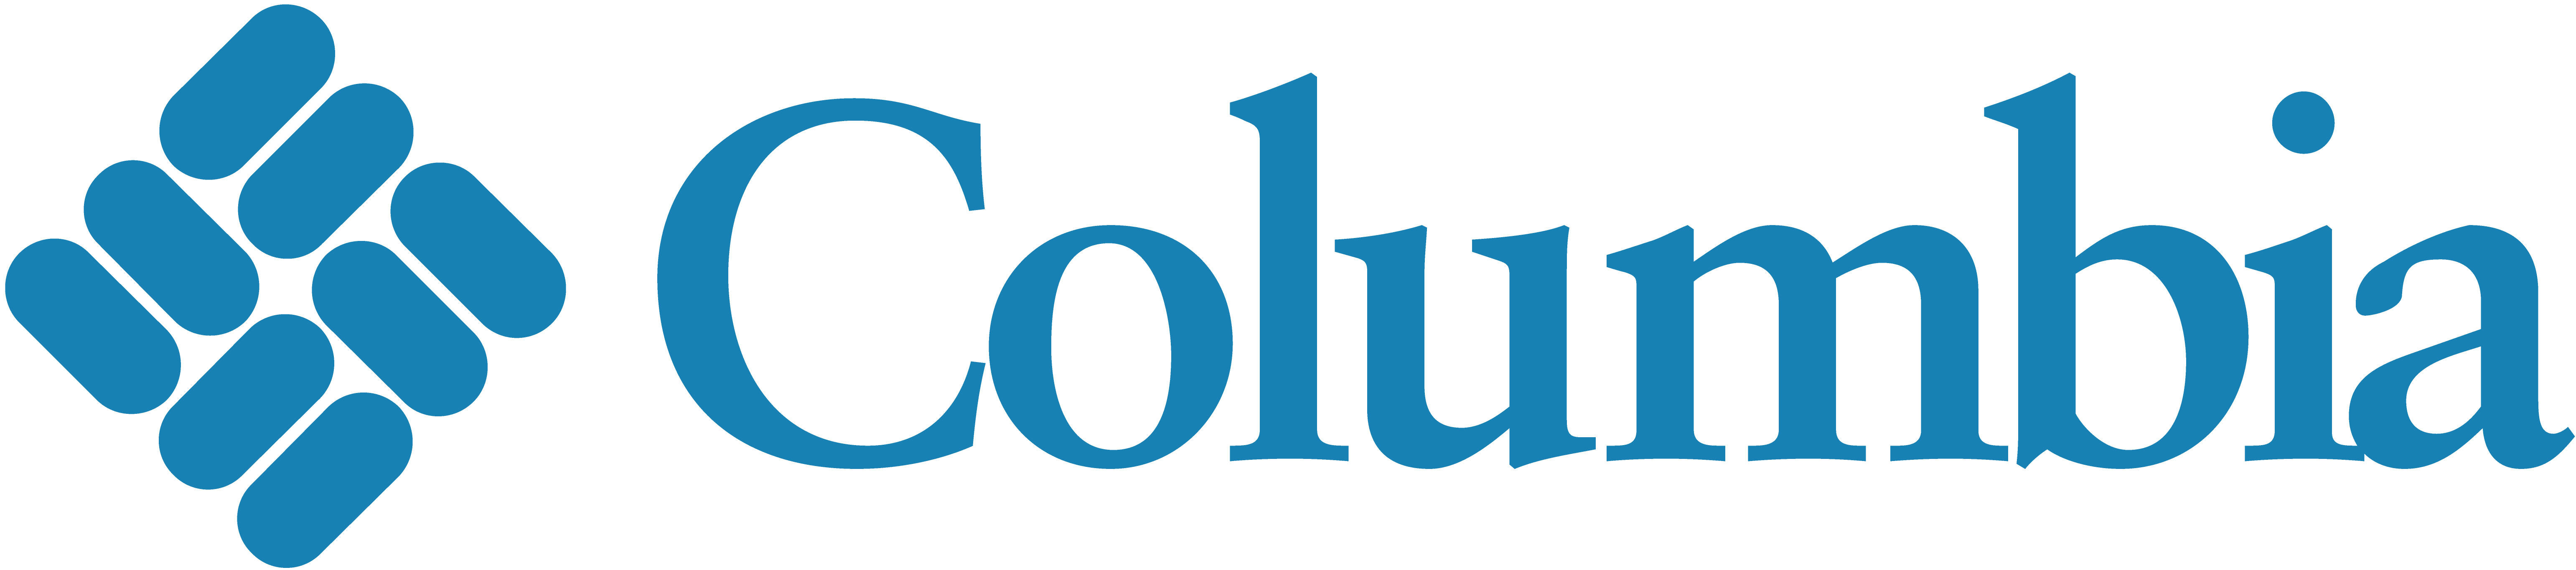 Columbia Logo Brand Wallpaper